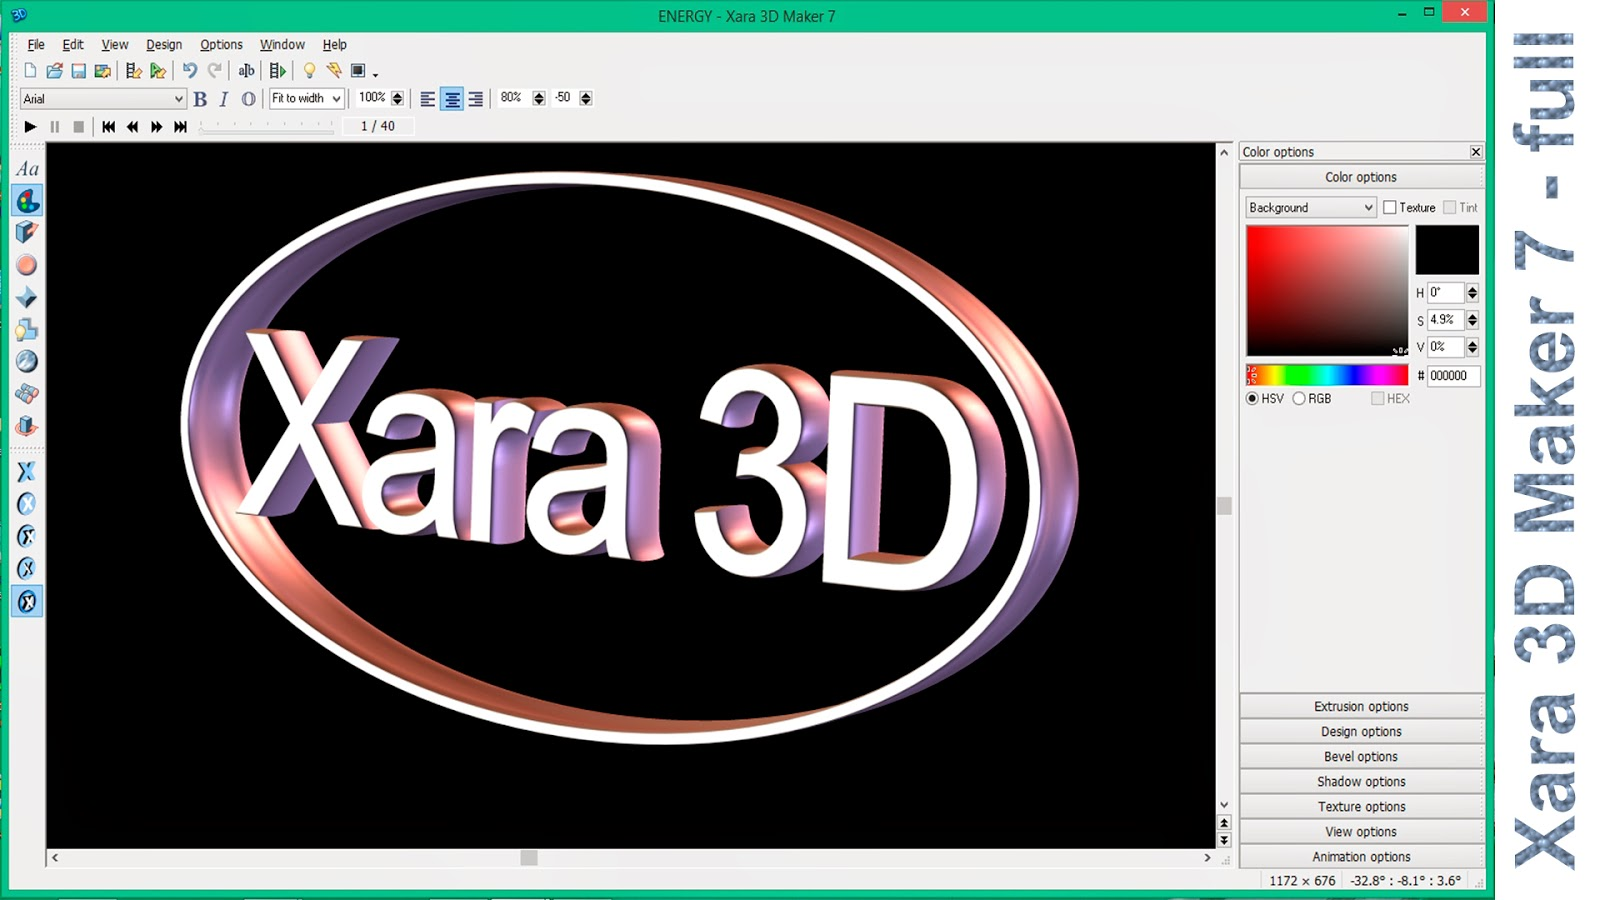 Xara-3D-Maker-7-design-logo